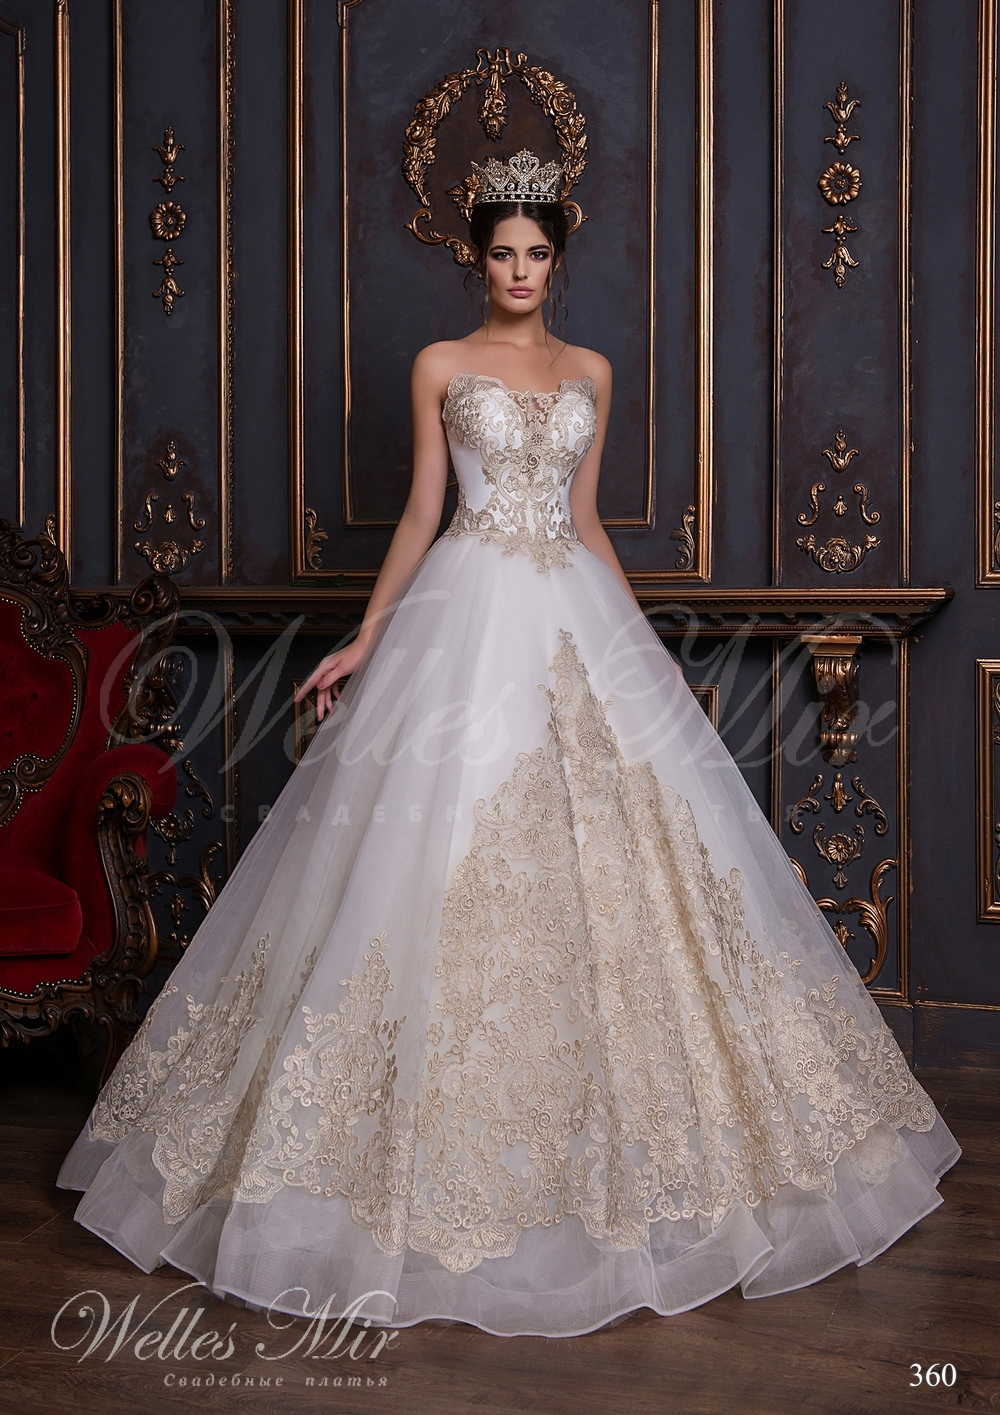 Open wedding dress with a gold embroidery and applications 360